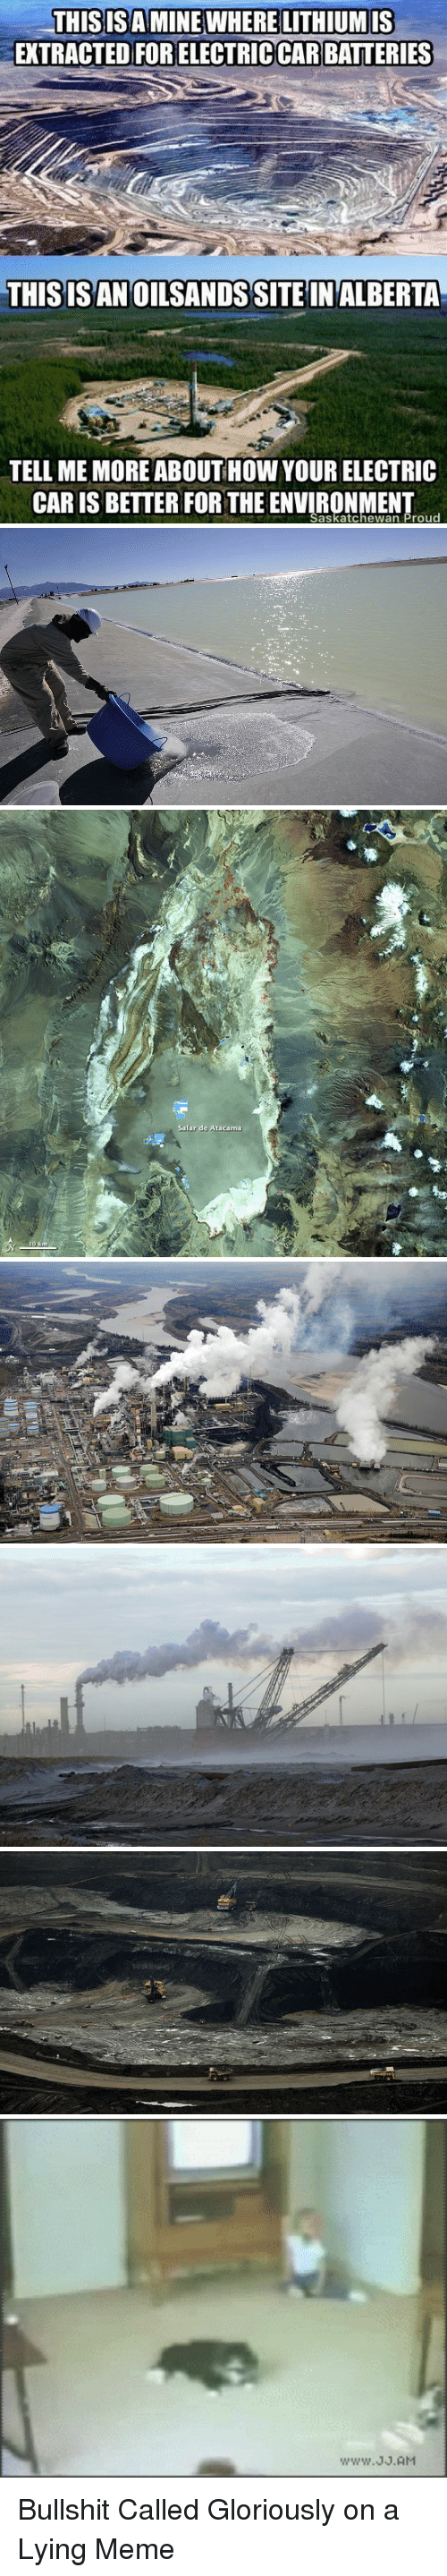 Lies Meme: THIS ISAMINEWHERELITHIUMIS  EXTRACTED FORELECTRICCARBATTERIES  THIS ISAN OILSANDSSITE IN ALBERTA  TELL ME MORE ABOUTHowYOUR ELECTRIC  CARIS BETTER FOR THE Saskatchewan Proud   Salar de Atacama Bullshit Called Gloriously on a Lying Meme